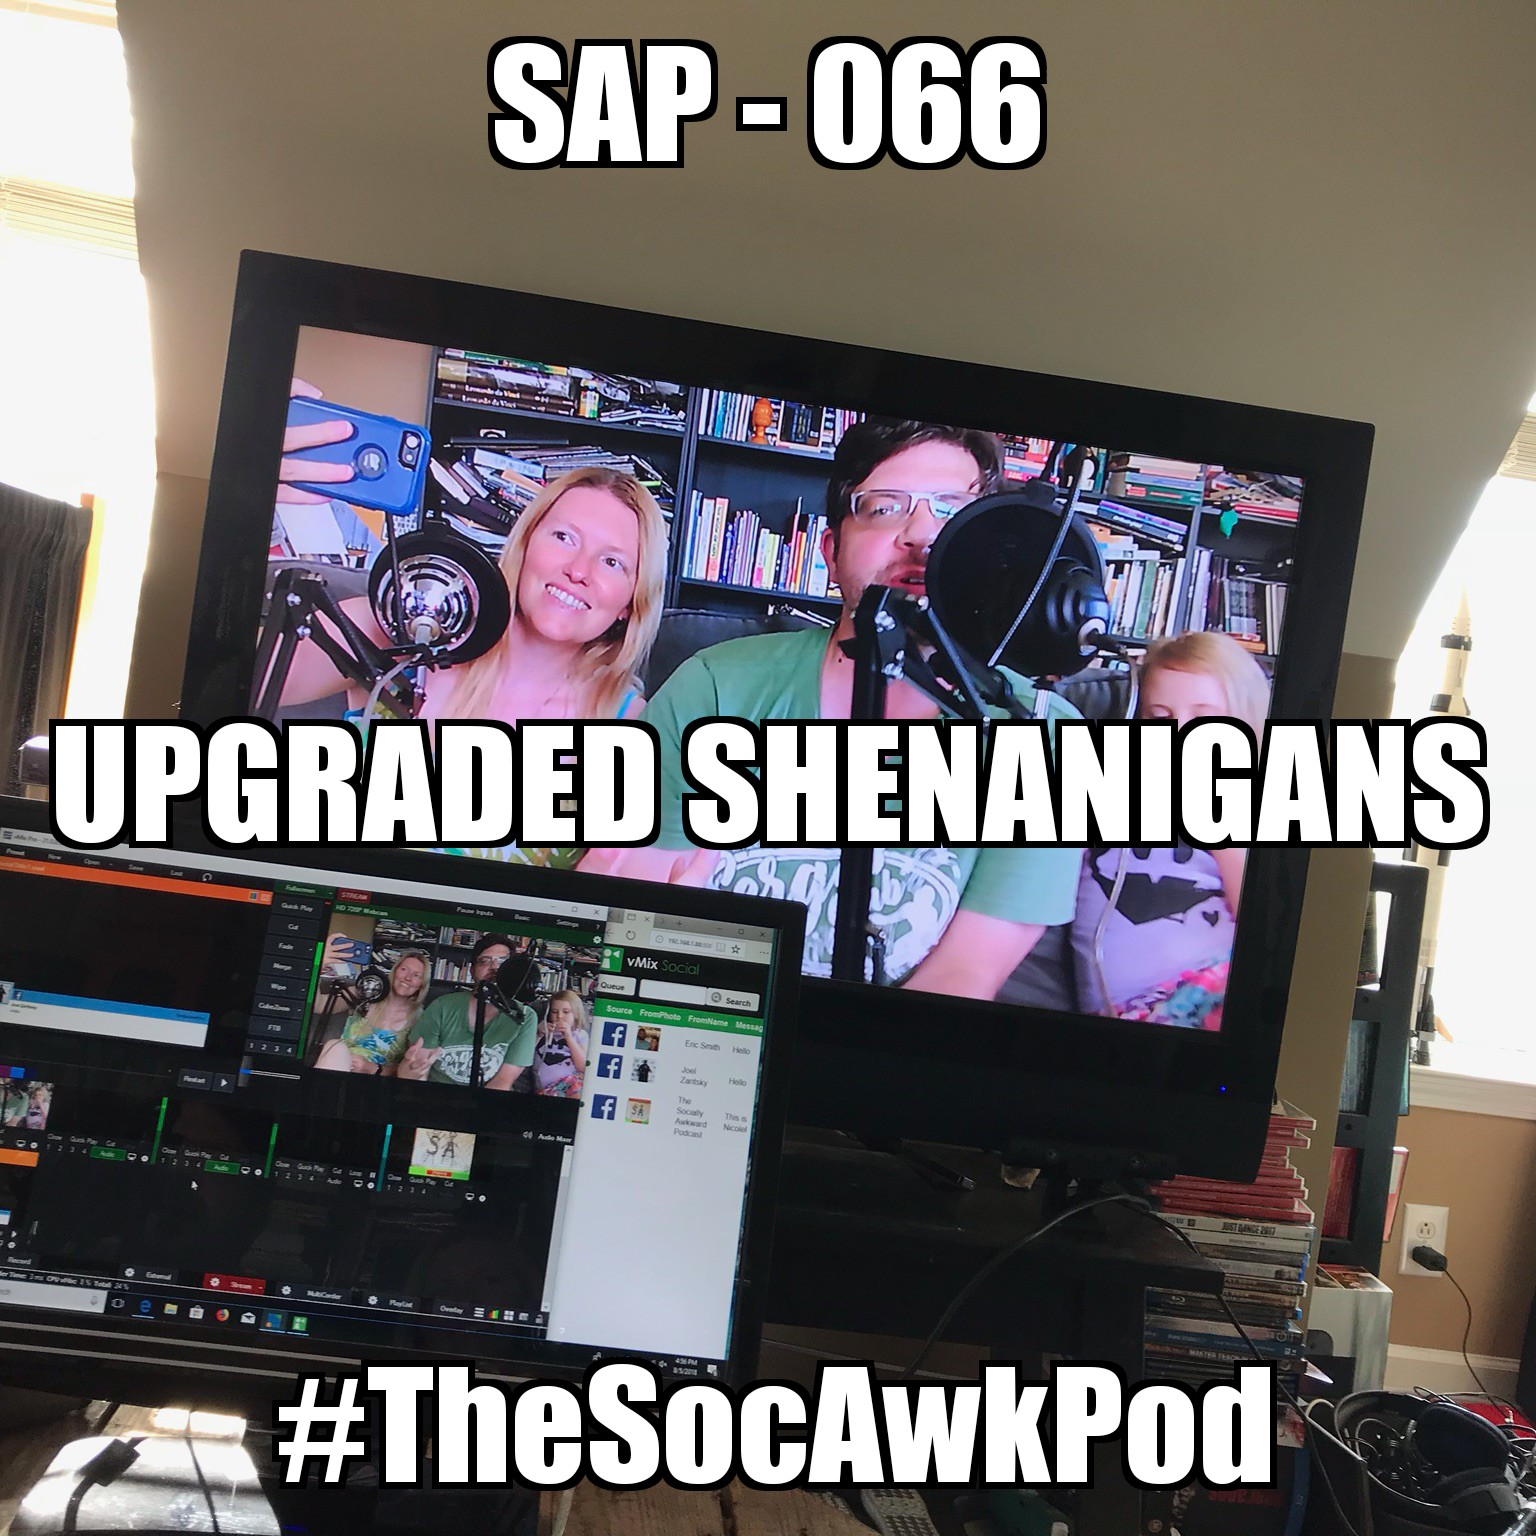 SAP - 066 - Upgraded Shenanigans